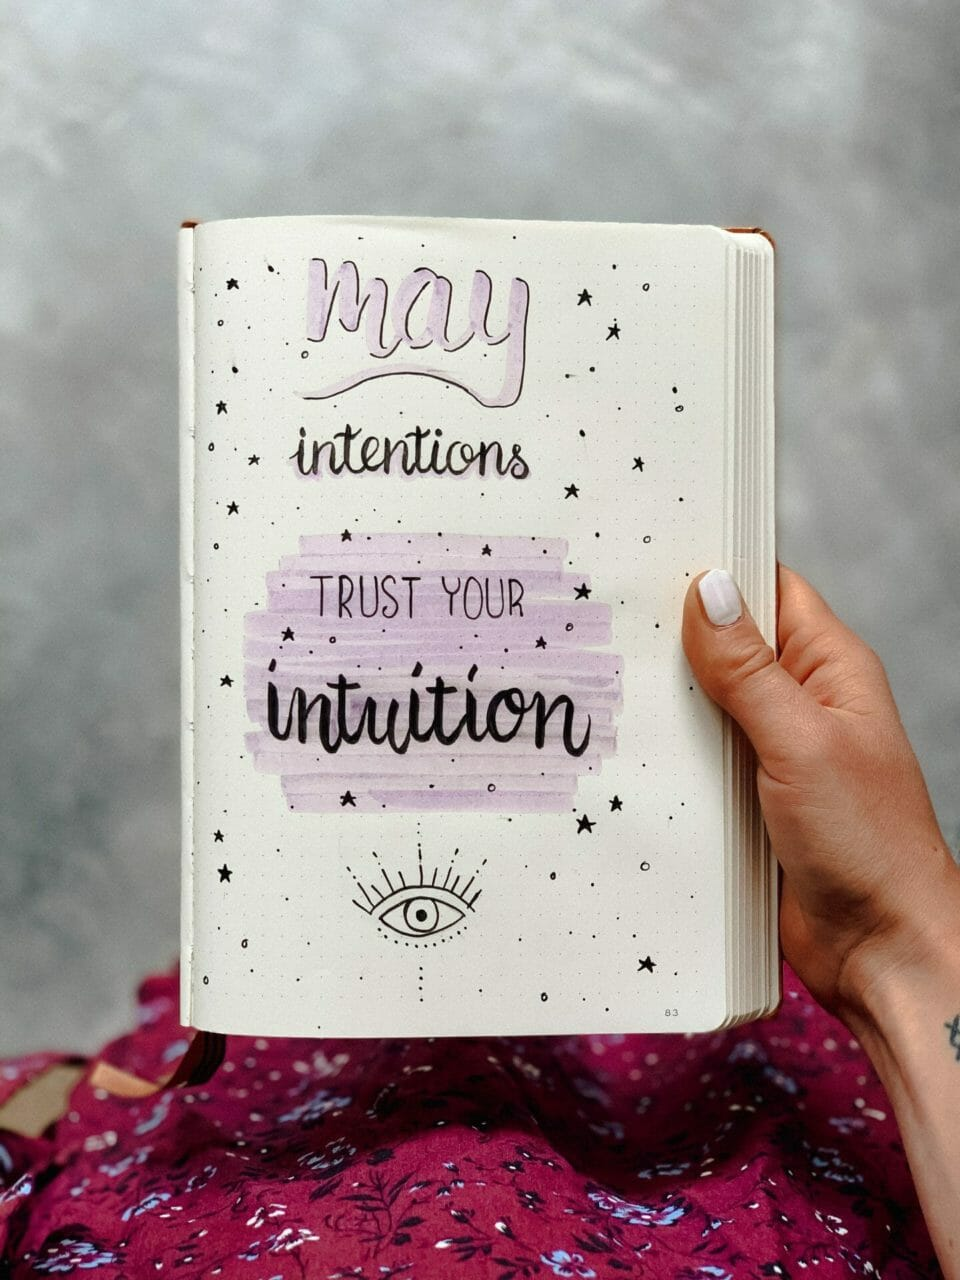 Mai Intention: trust your intuition.